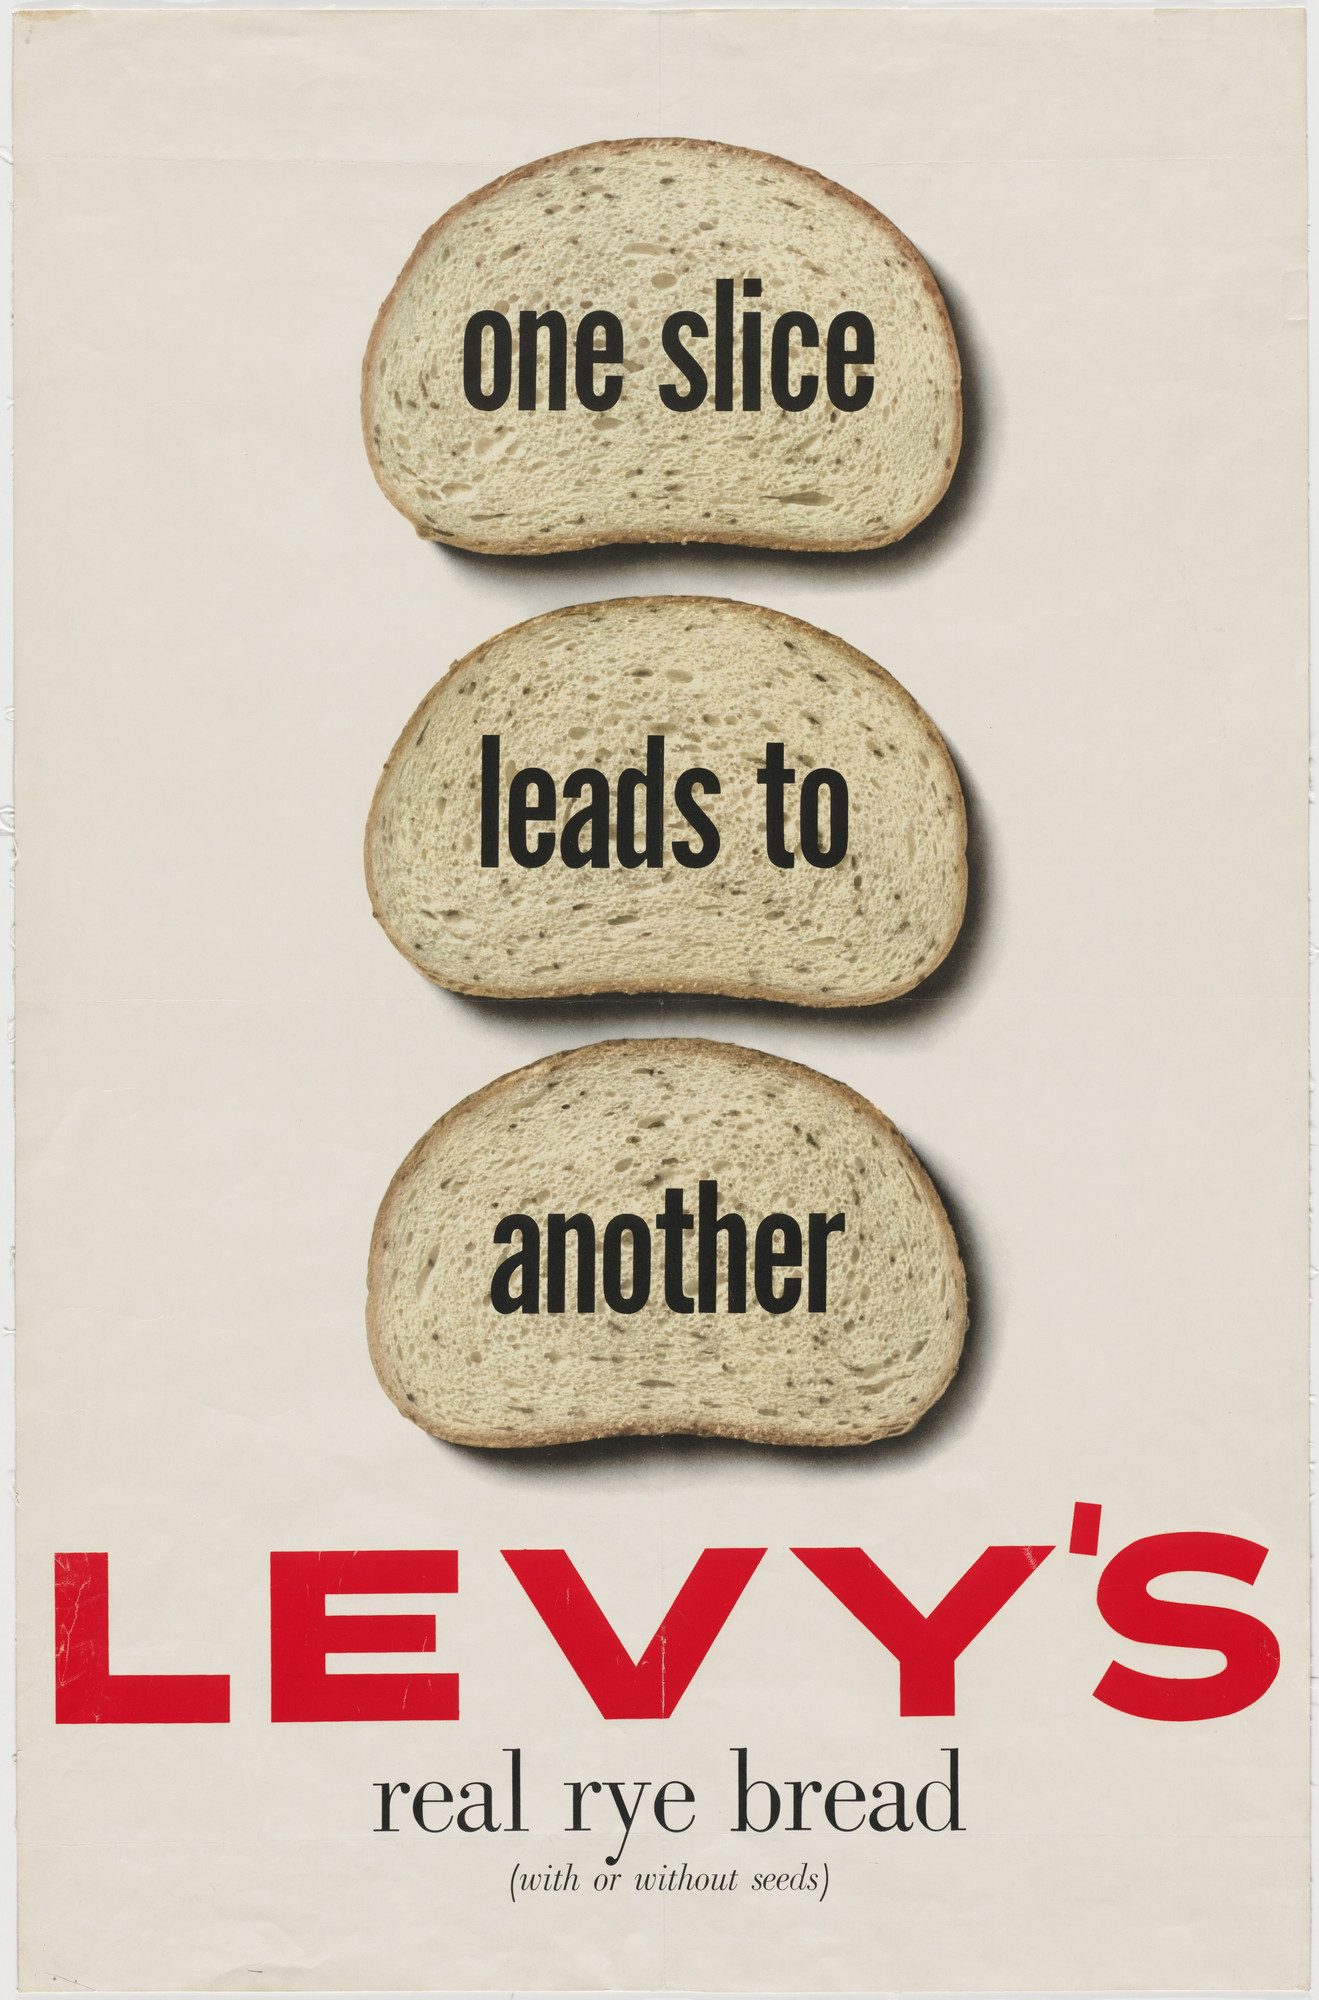 Robert Gage. One Slice Leads to Another, Levy's Real Rye Bread. 1952